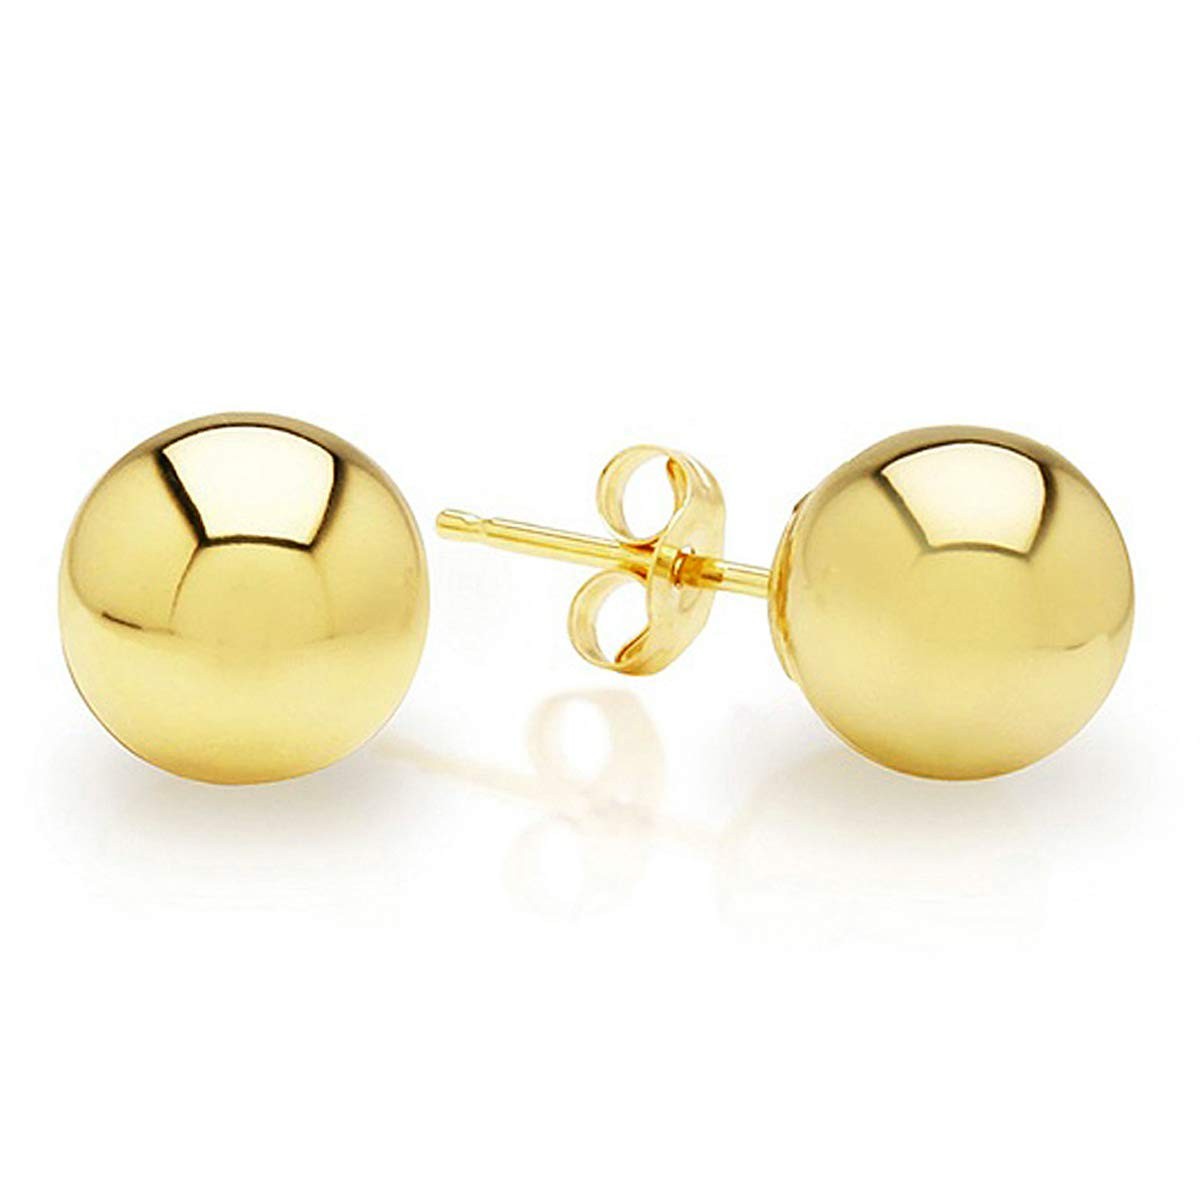 BSD 14K Yellow Gold Ball Stud Earrings for Women   Studs With Push Backs   Real Hypoallergenic Jewelry and Accessories   3mm - 8mm